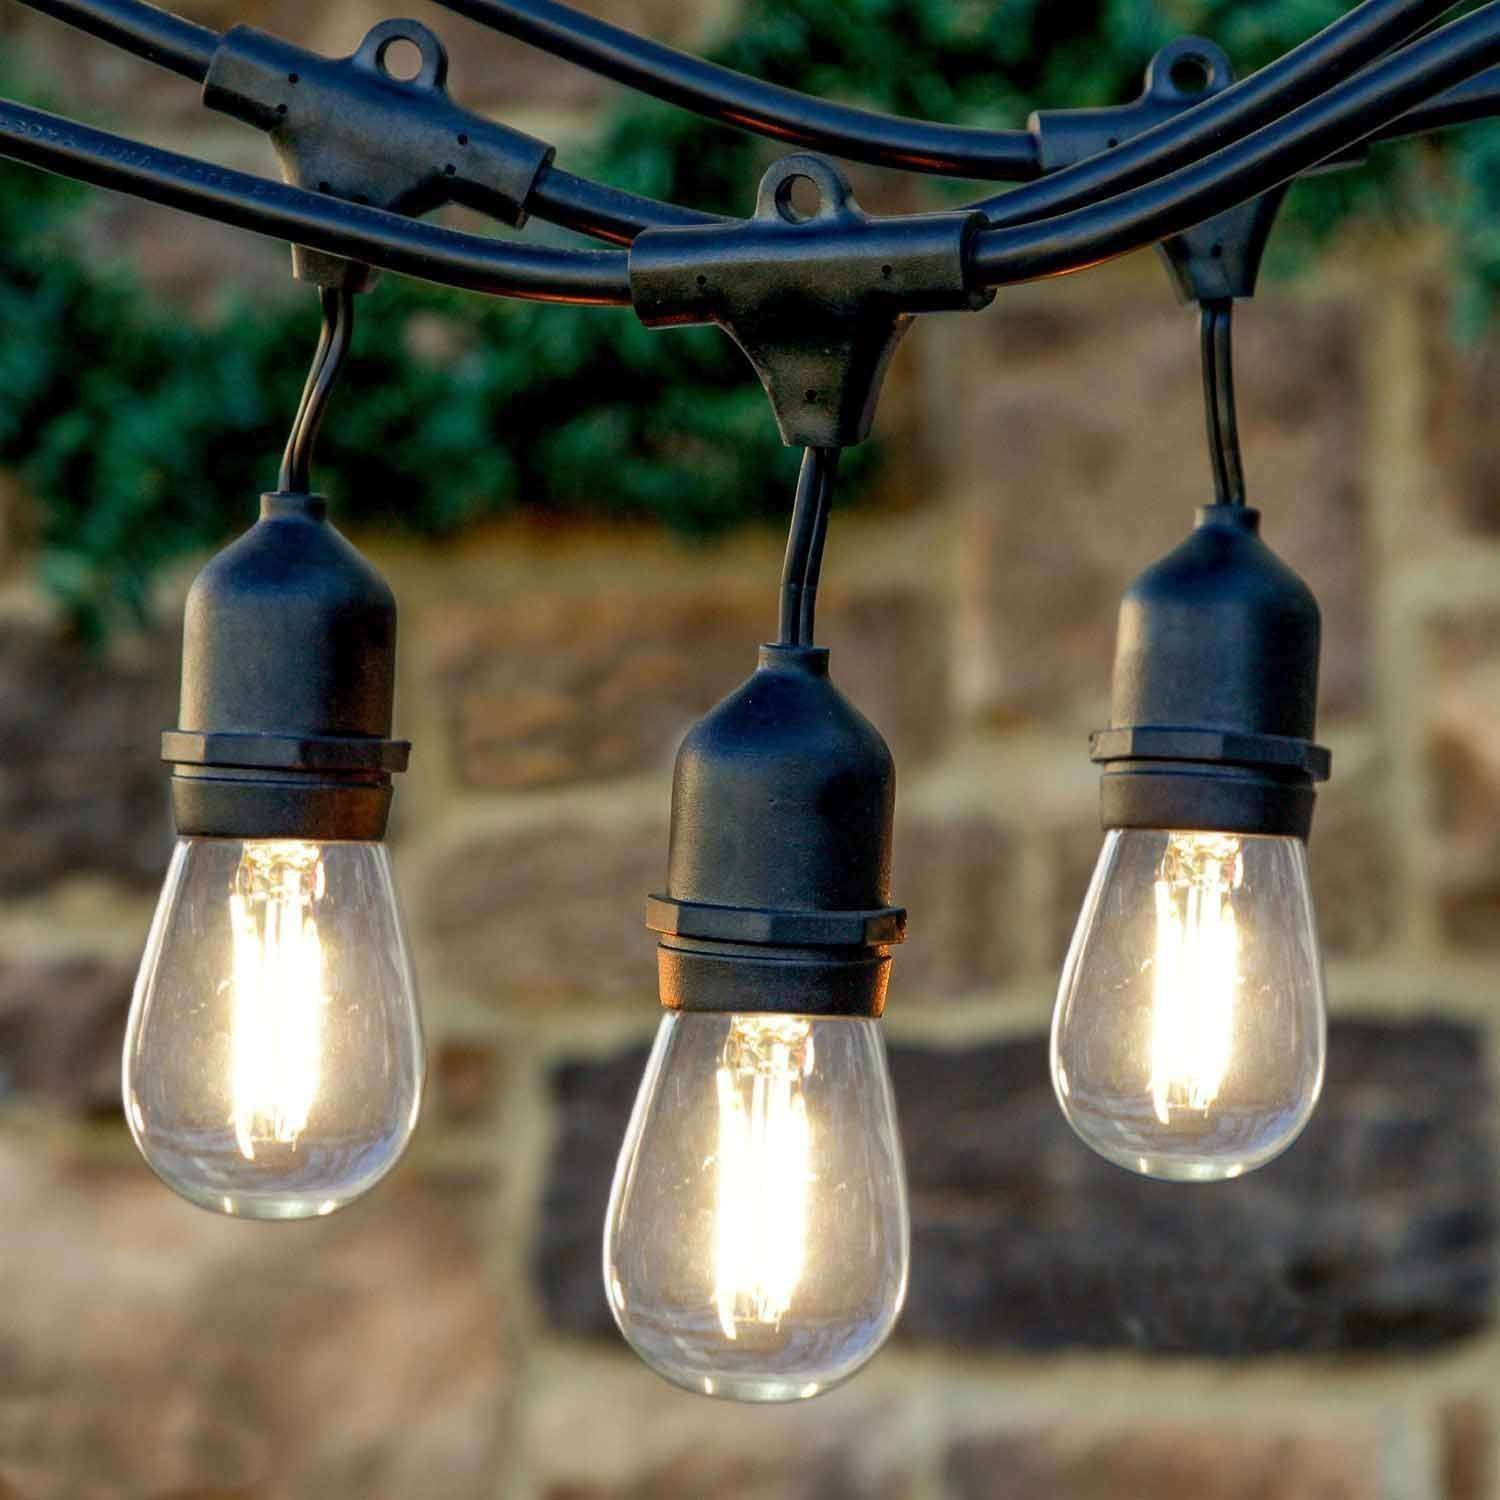 Outdoor led string lighting lighting ideas for Patio string light ideas